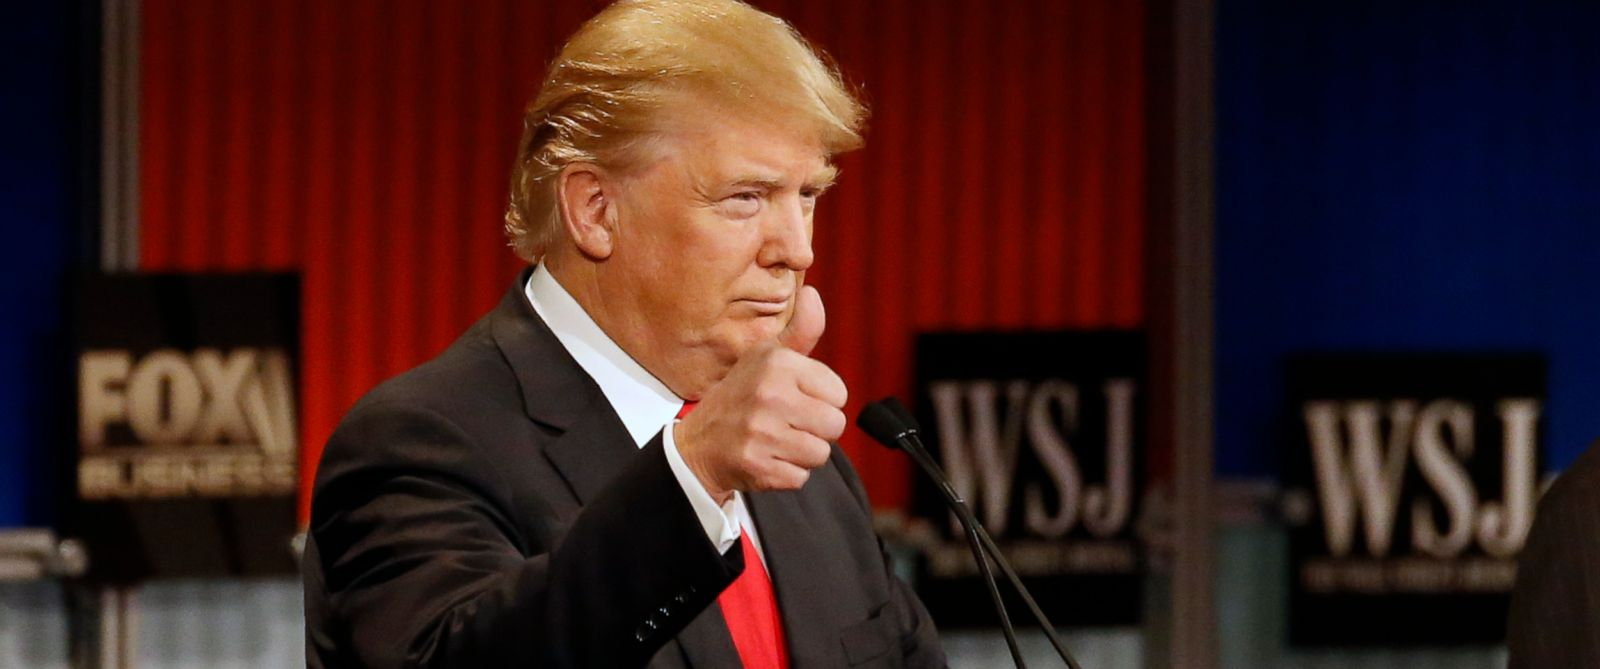 PHOTO: Donald Trump gestures during Republican presidential debate at Milwaukee Theatre, Nov. 10, 2015, in Milwaukee.